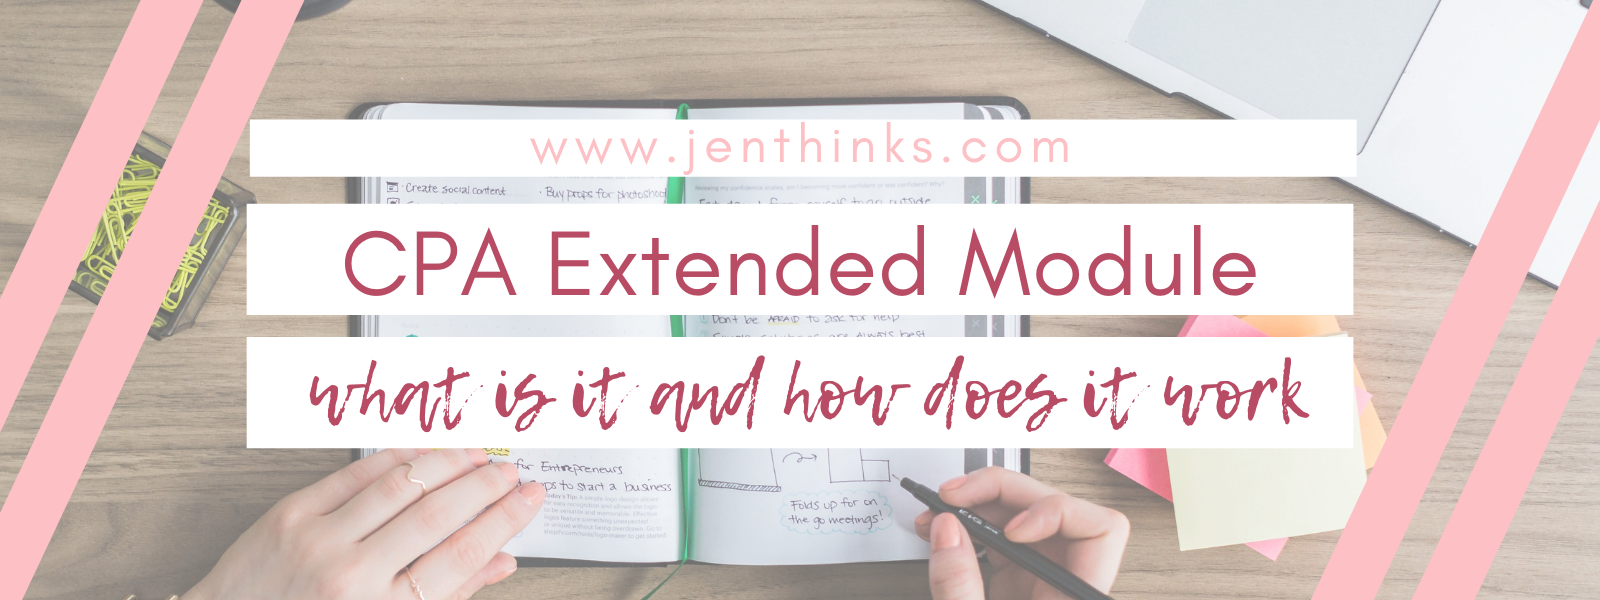 CPA what is extended module